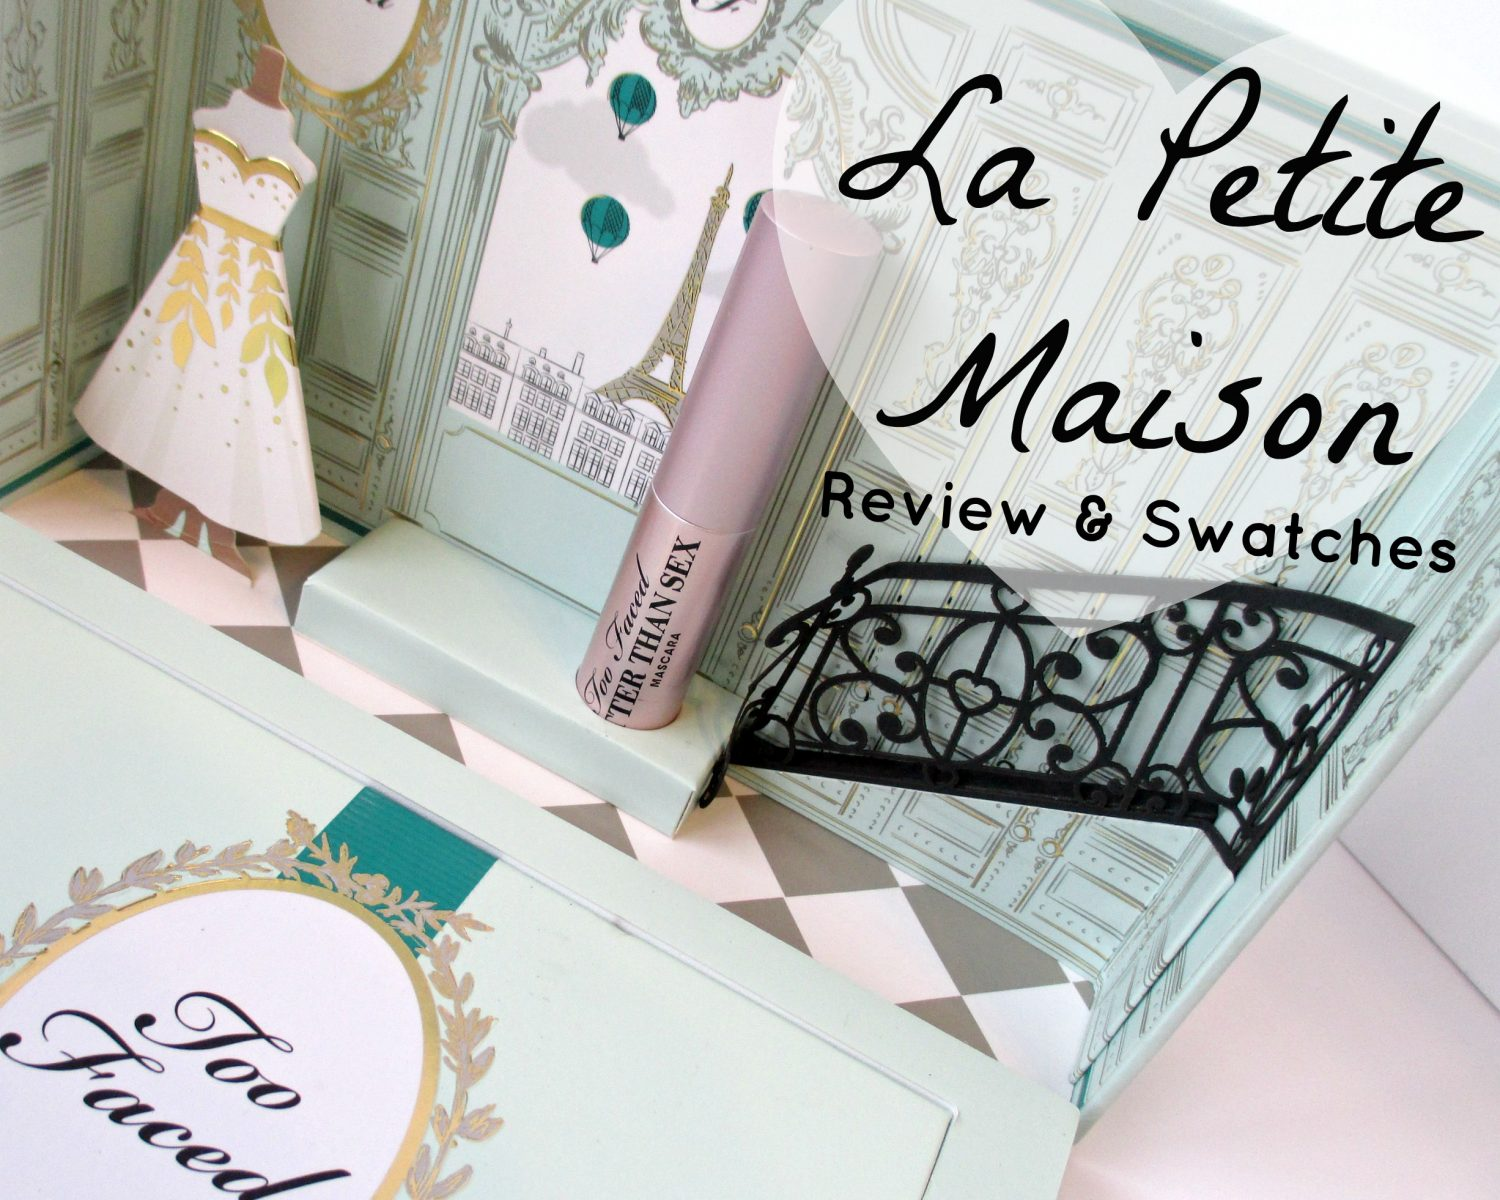 Too Faced La Petite Maison // Holiday Set // Review & Swatches // #UltaBeauty #TooFaced FromMyVanity.com